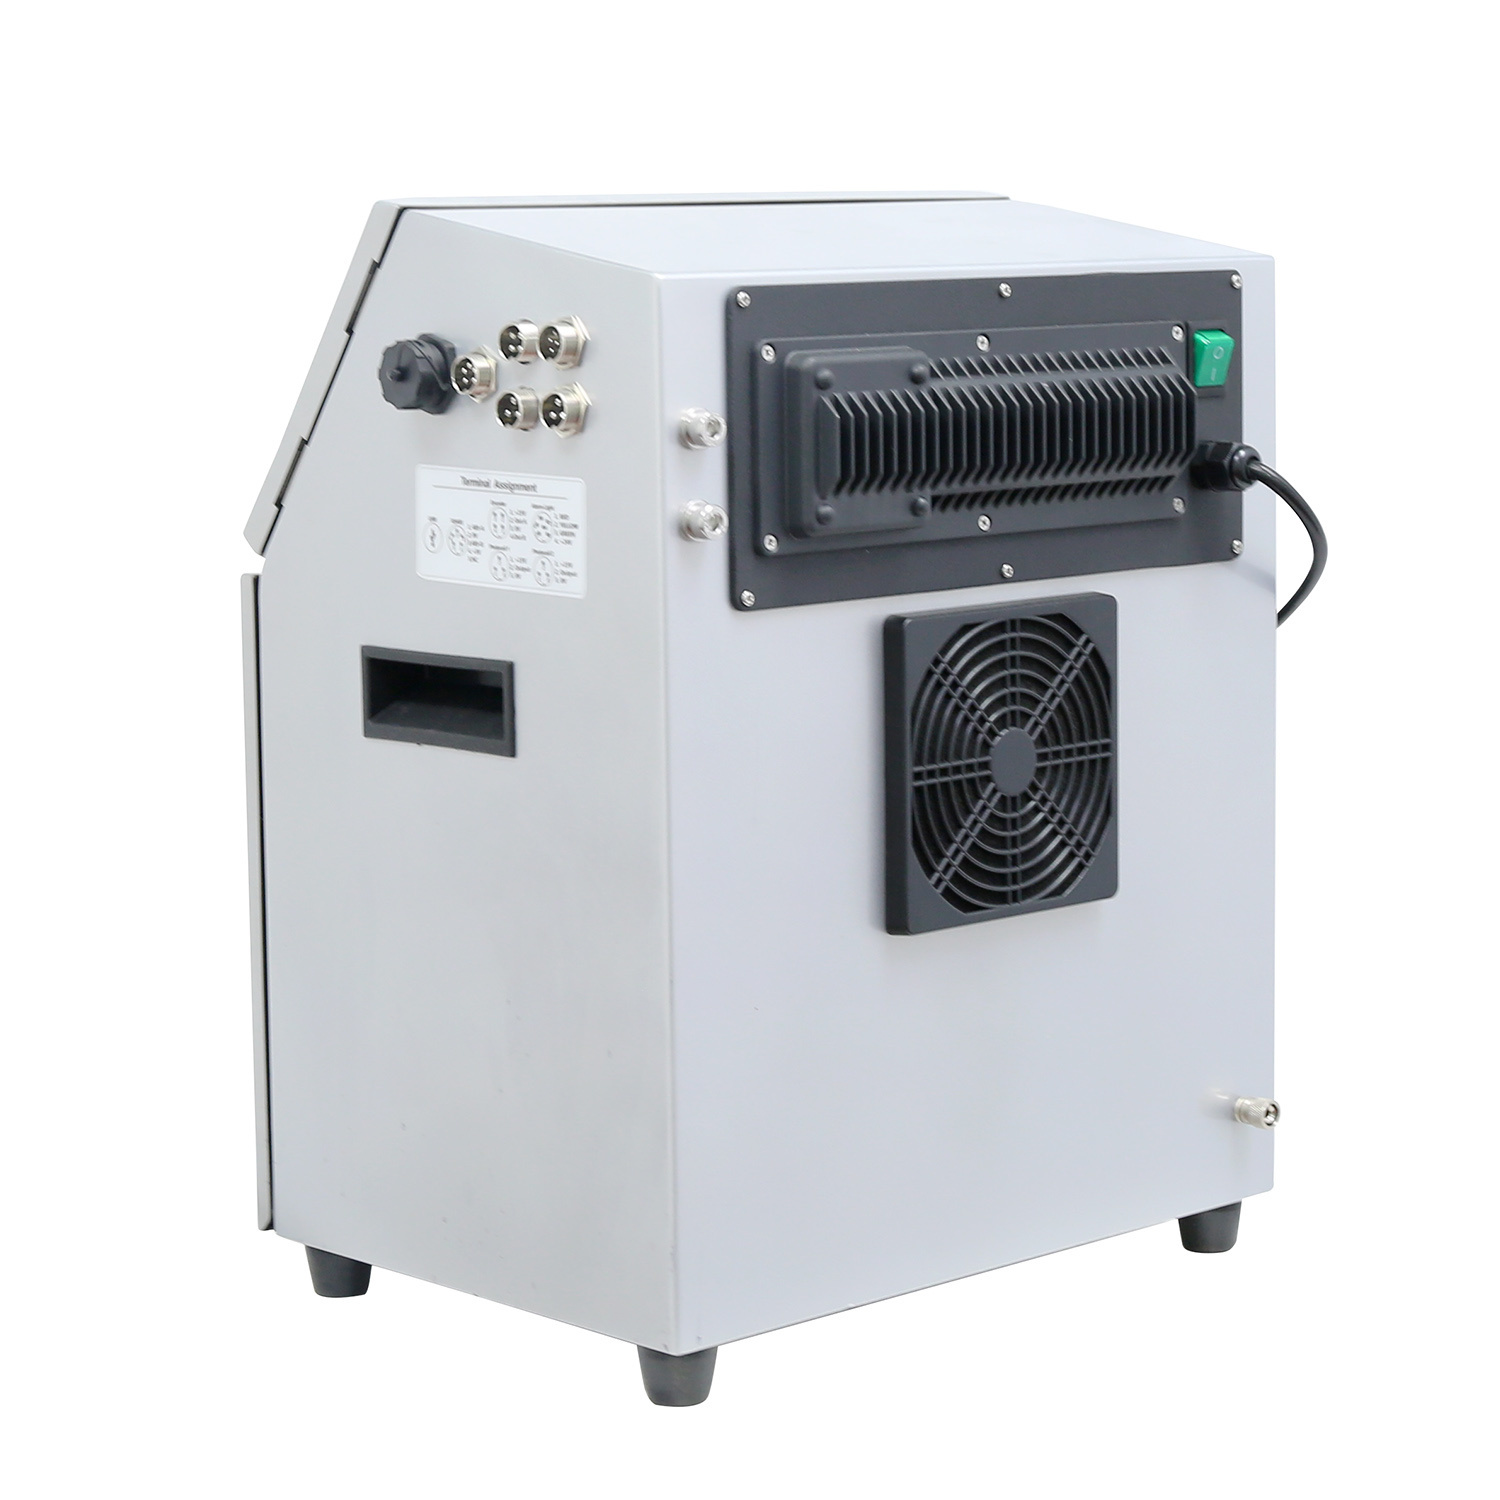 Lead Tech Lt800 Digital Stable Ink and Solvent Printing Machine for Plastic Printing